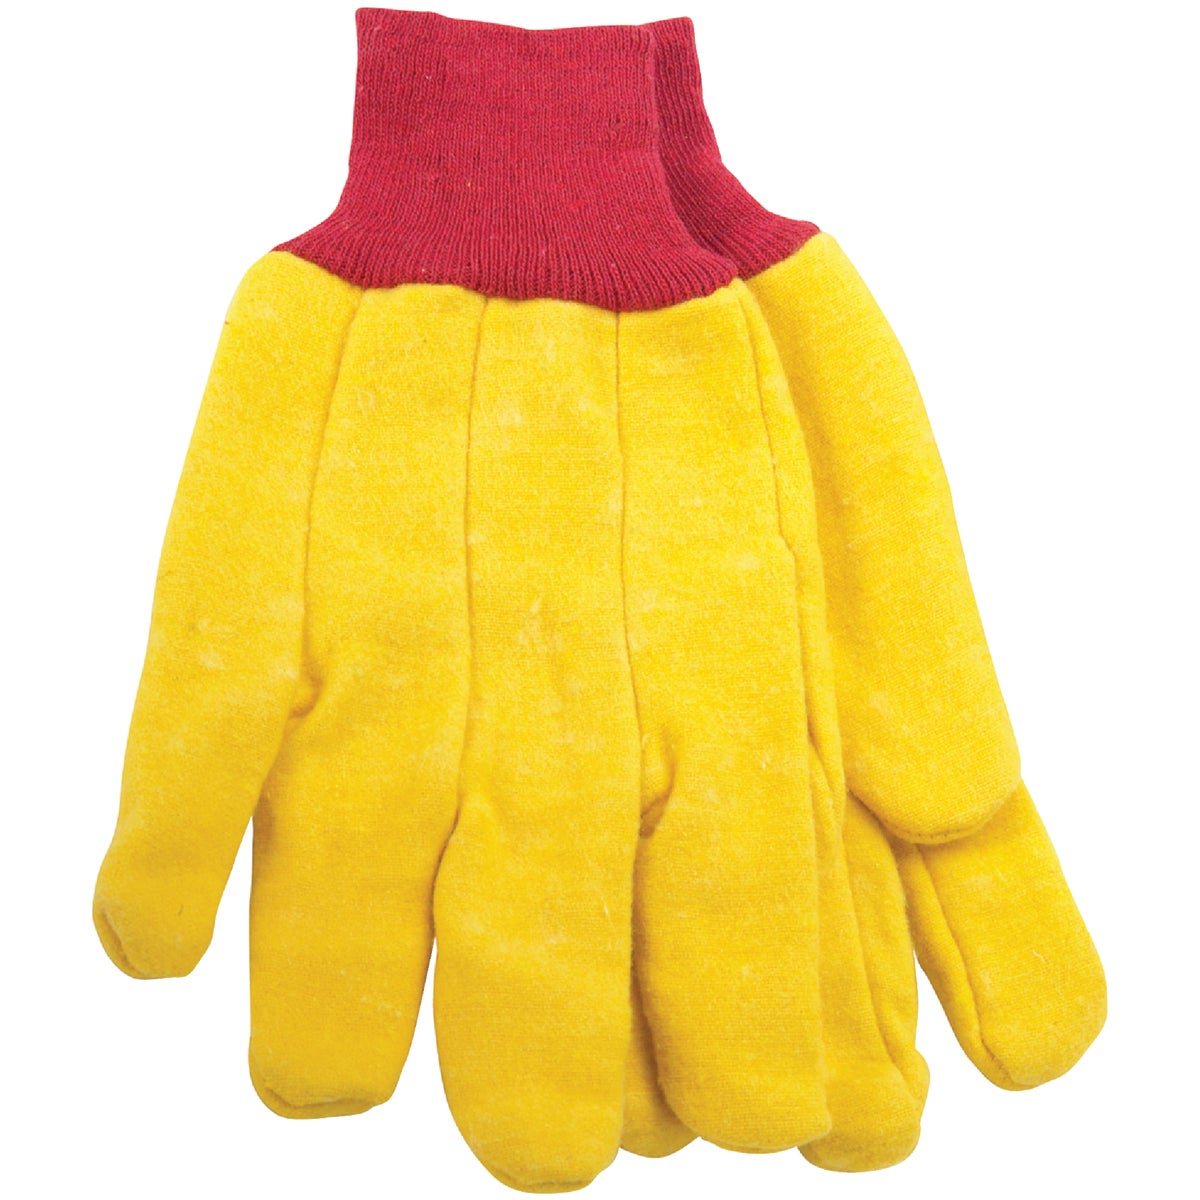 6PK CHORE GLOVE - 747623 by Do it Best